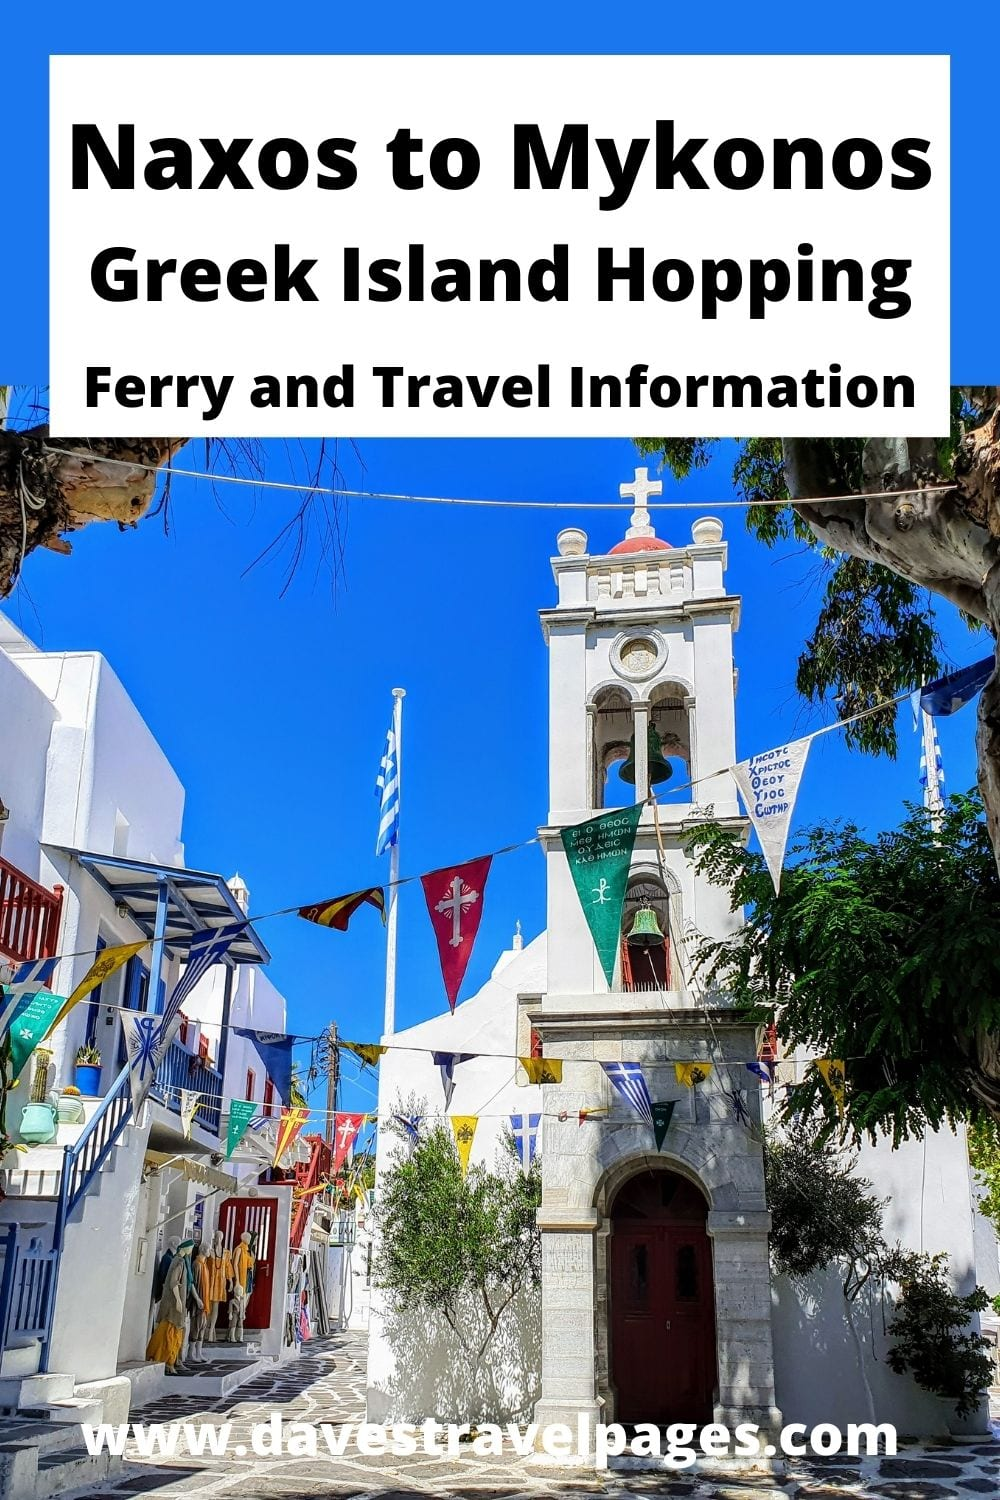 Naxos to Mykonos ferry and island hopping guide